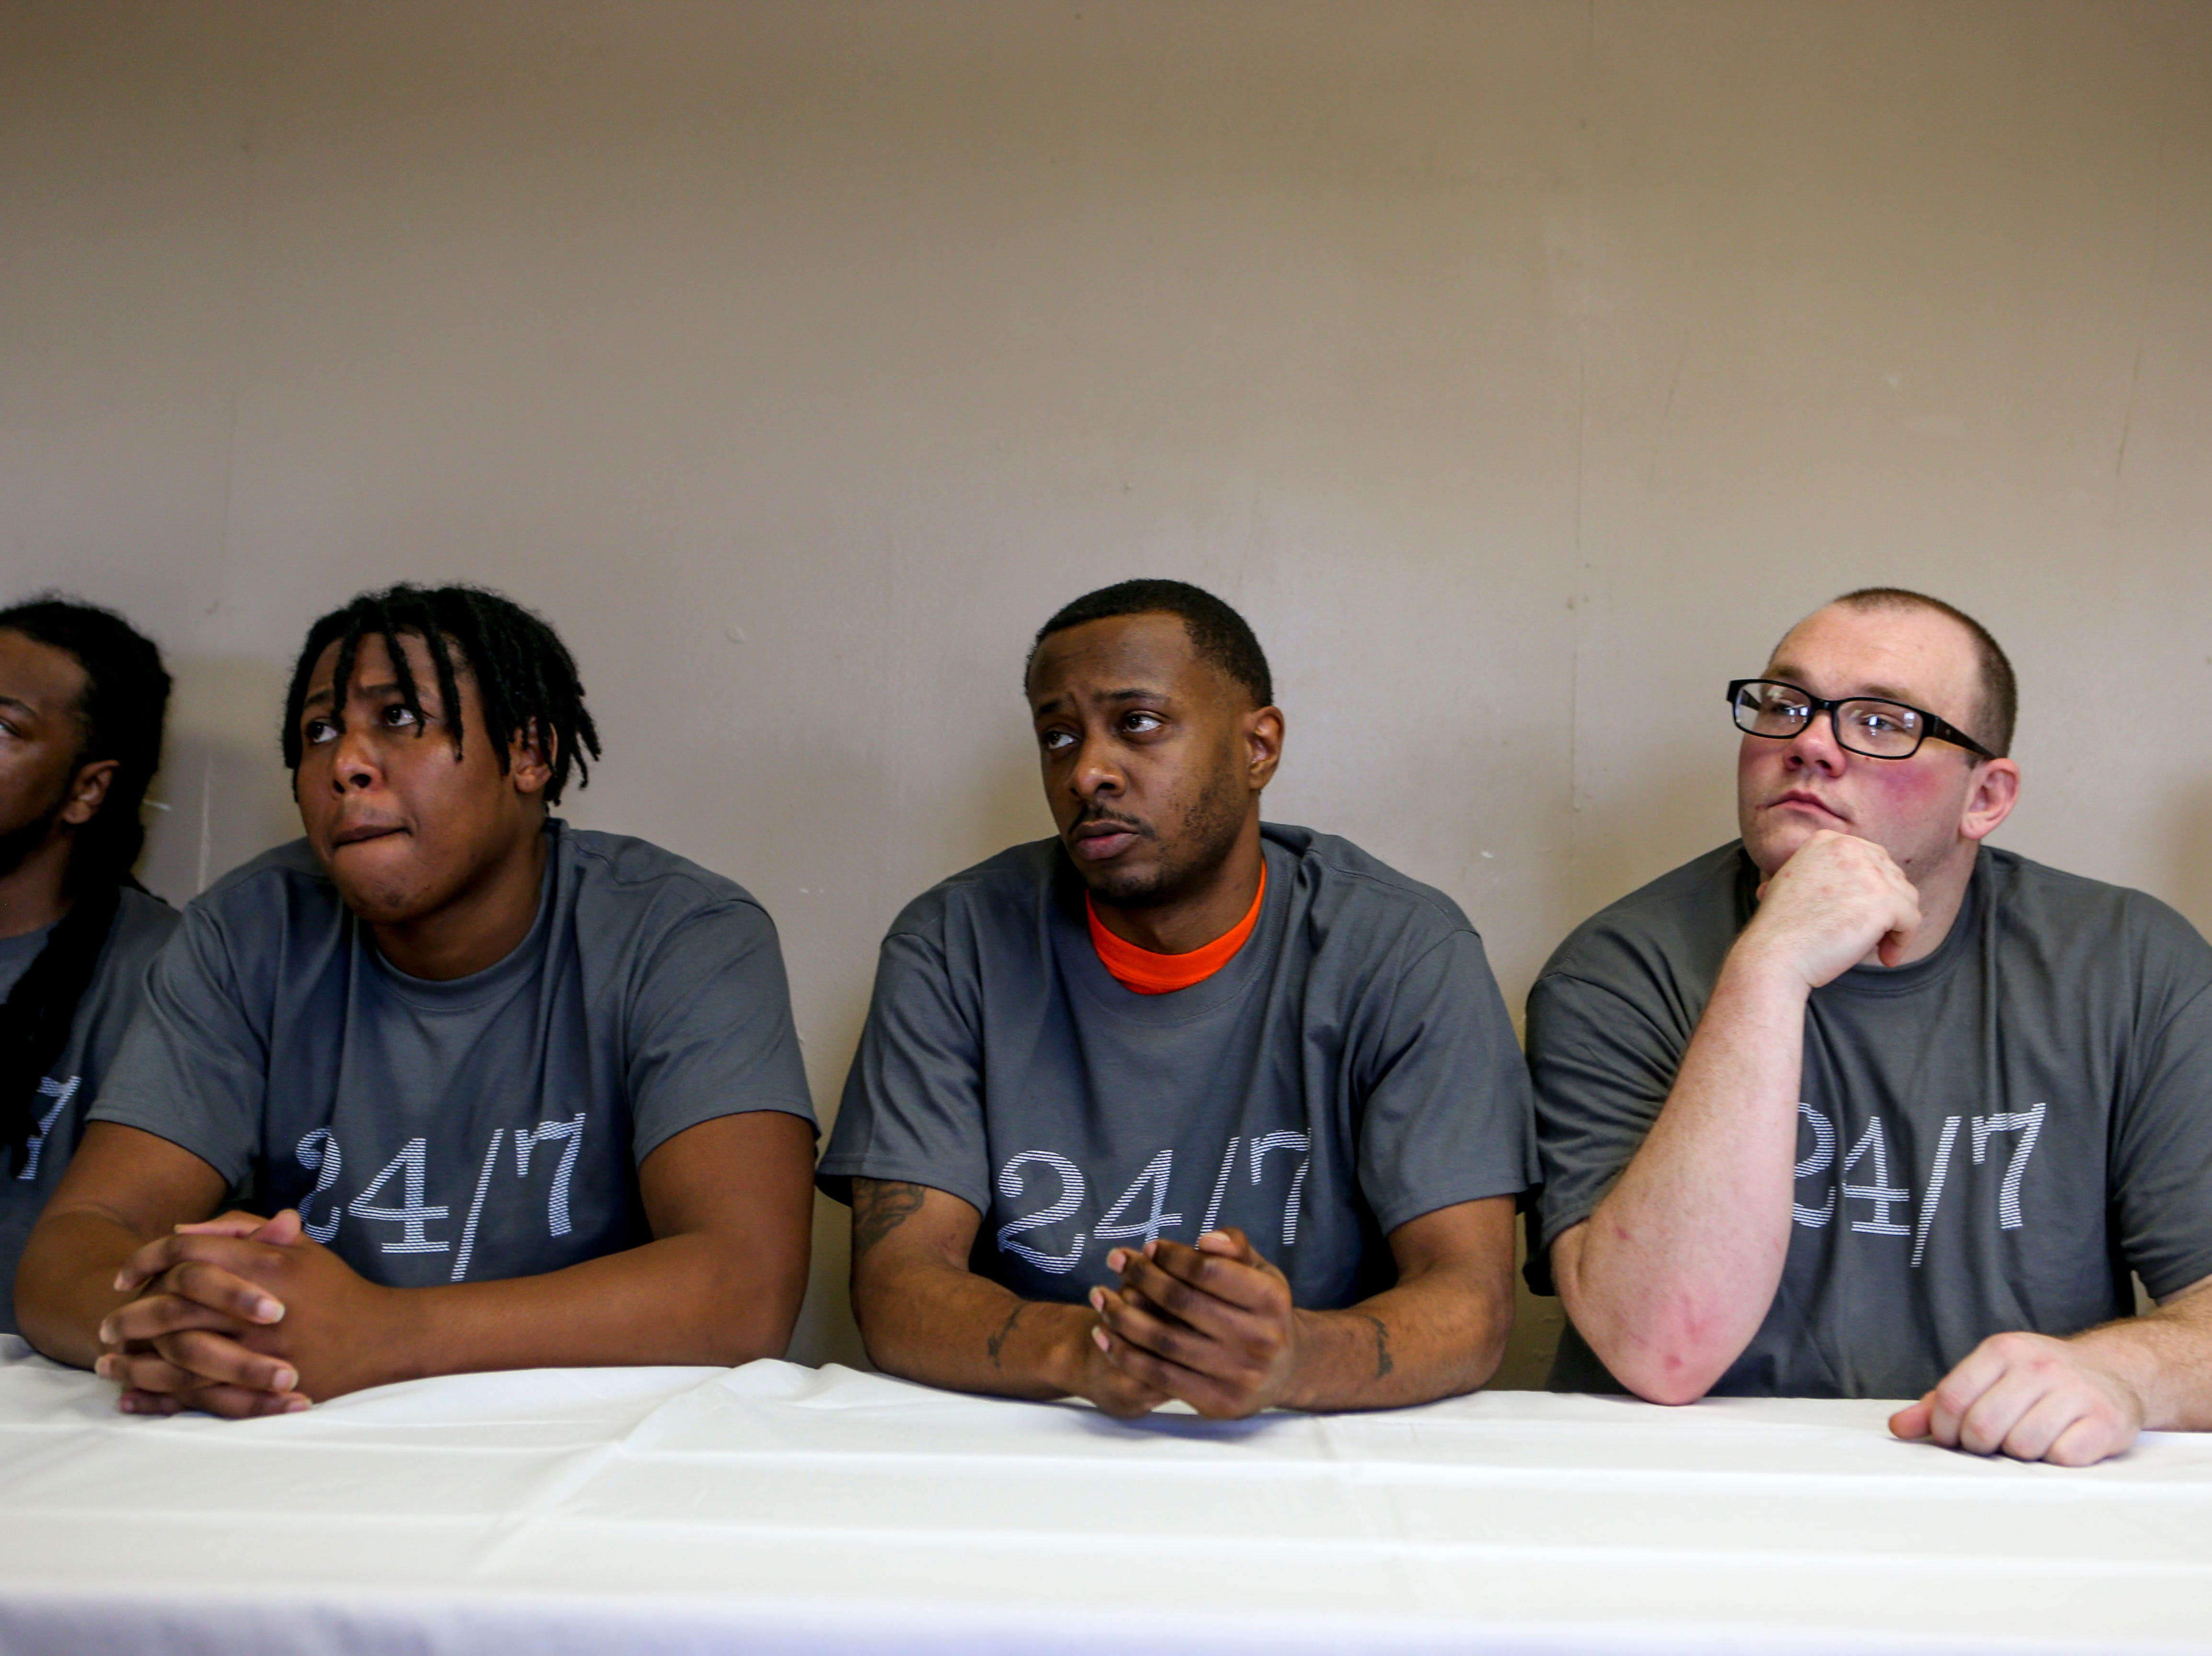 Nikolas Rhea, left, Devin Whitaker, center, and Dustin Alexander, right, sit and listen to program directors speak on their behalf during a graduation ceremony for the InsideOut Dad program at Madison County Penal Farm in Jackson, Tenn., on Thursday, Oct. 4, 2018.